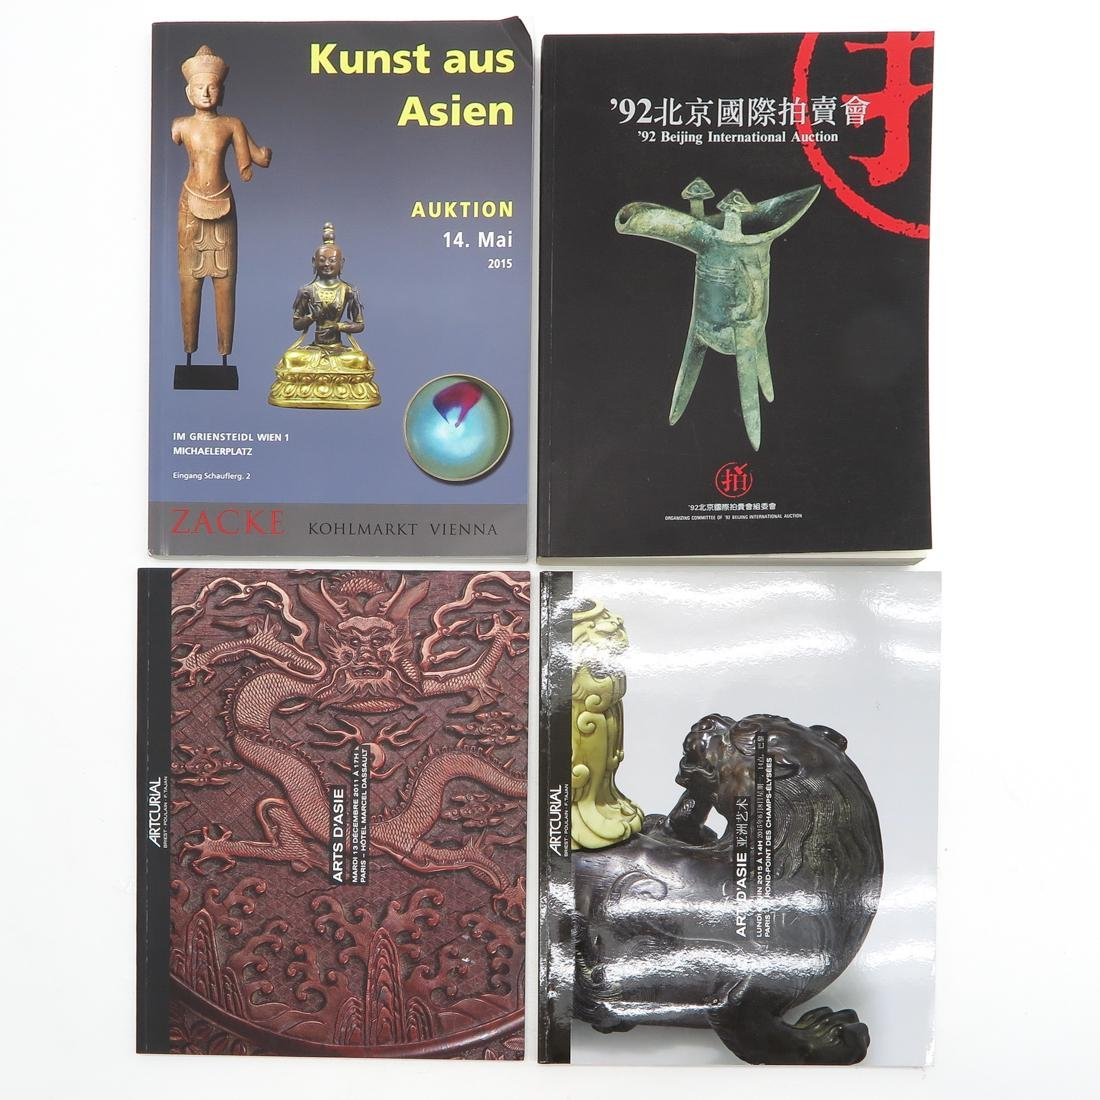 Lot of Asian Subject Auction Catalogs - 4